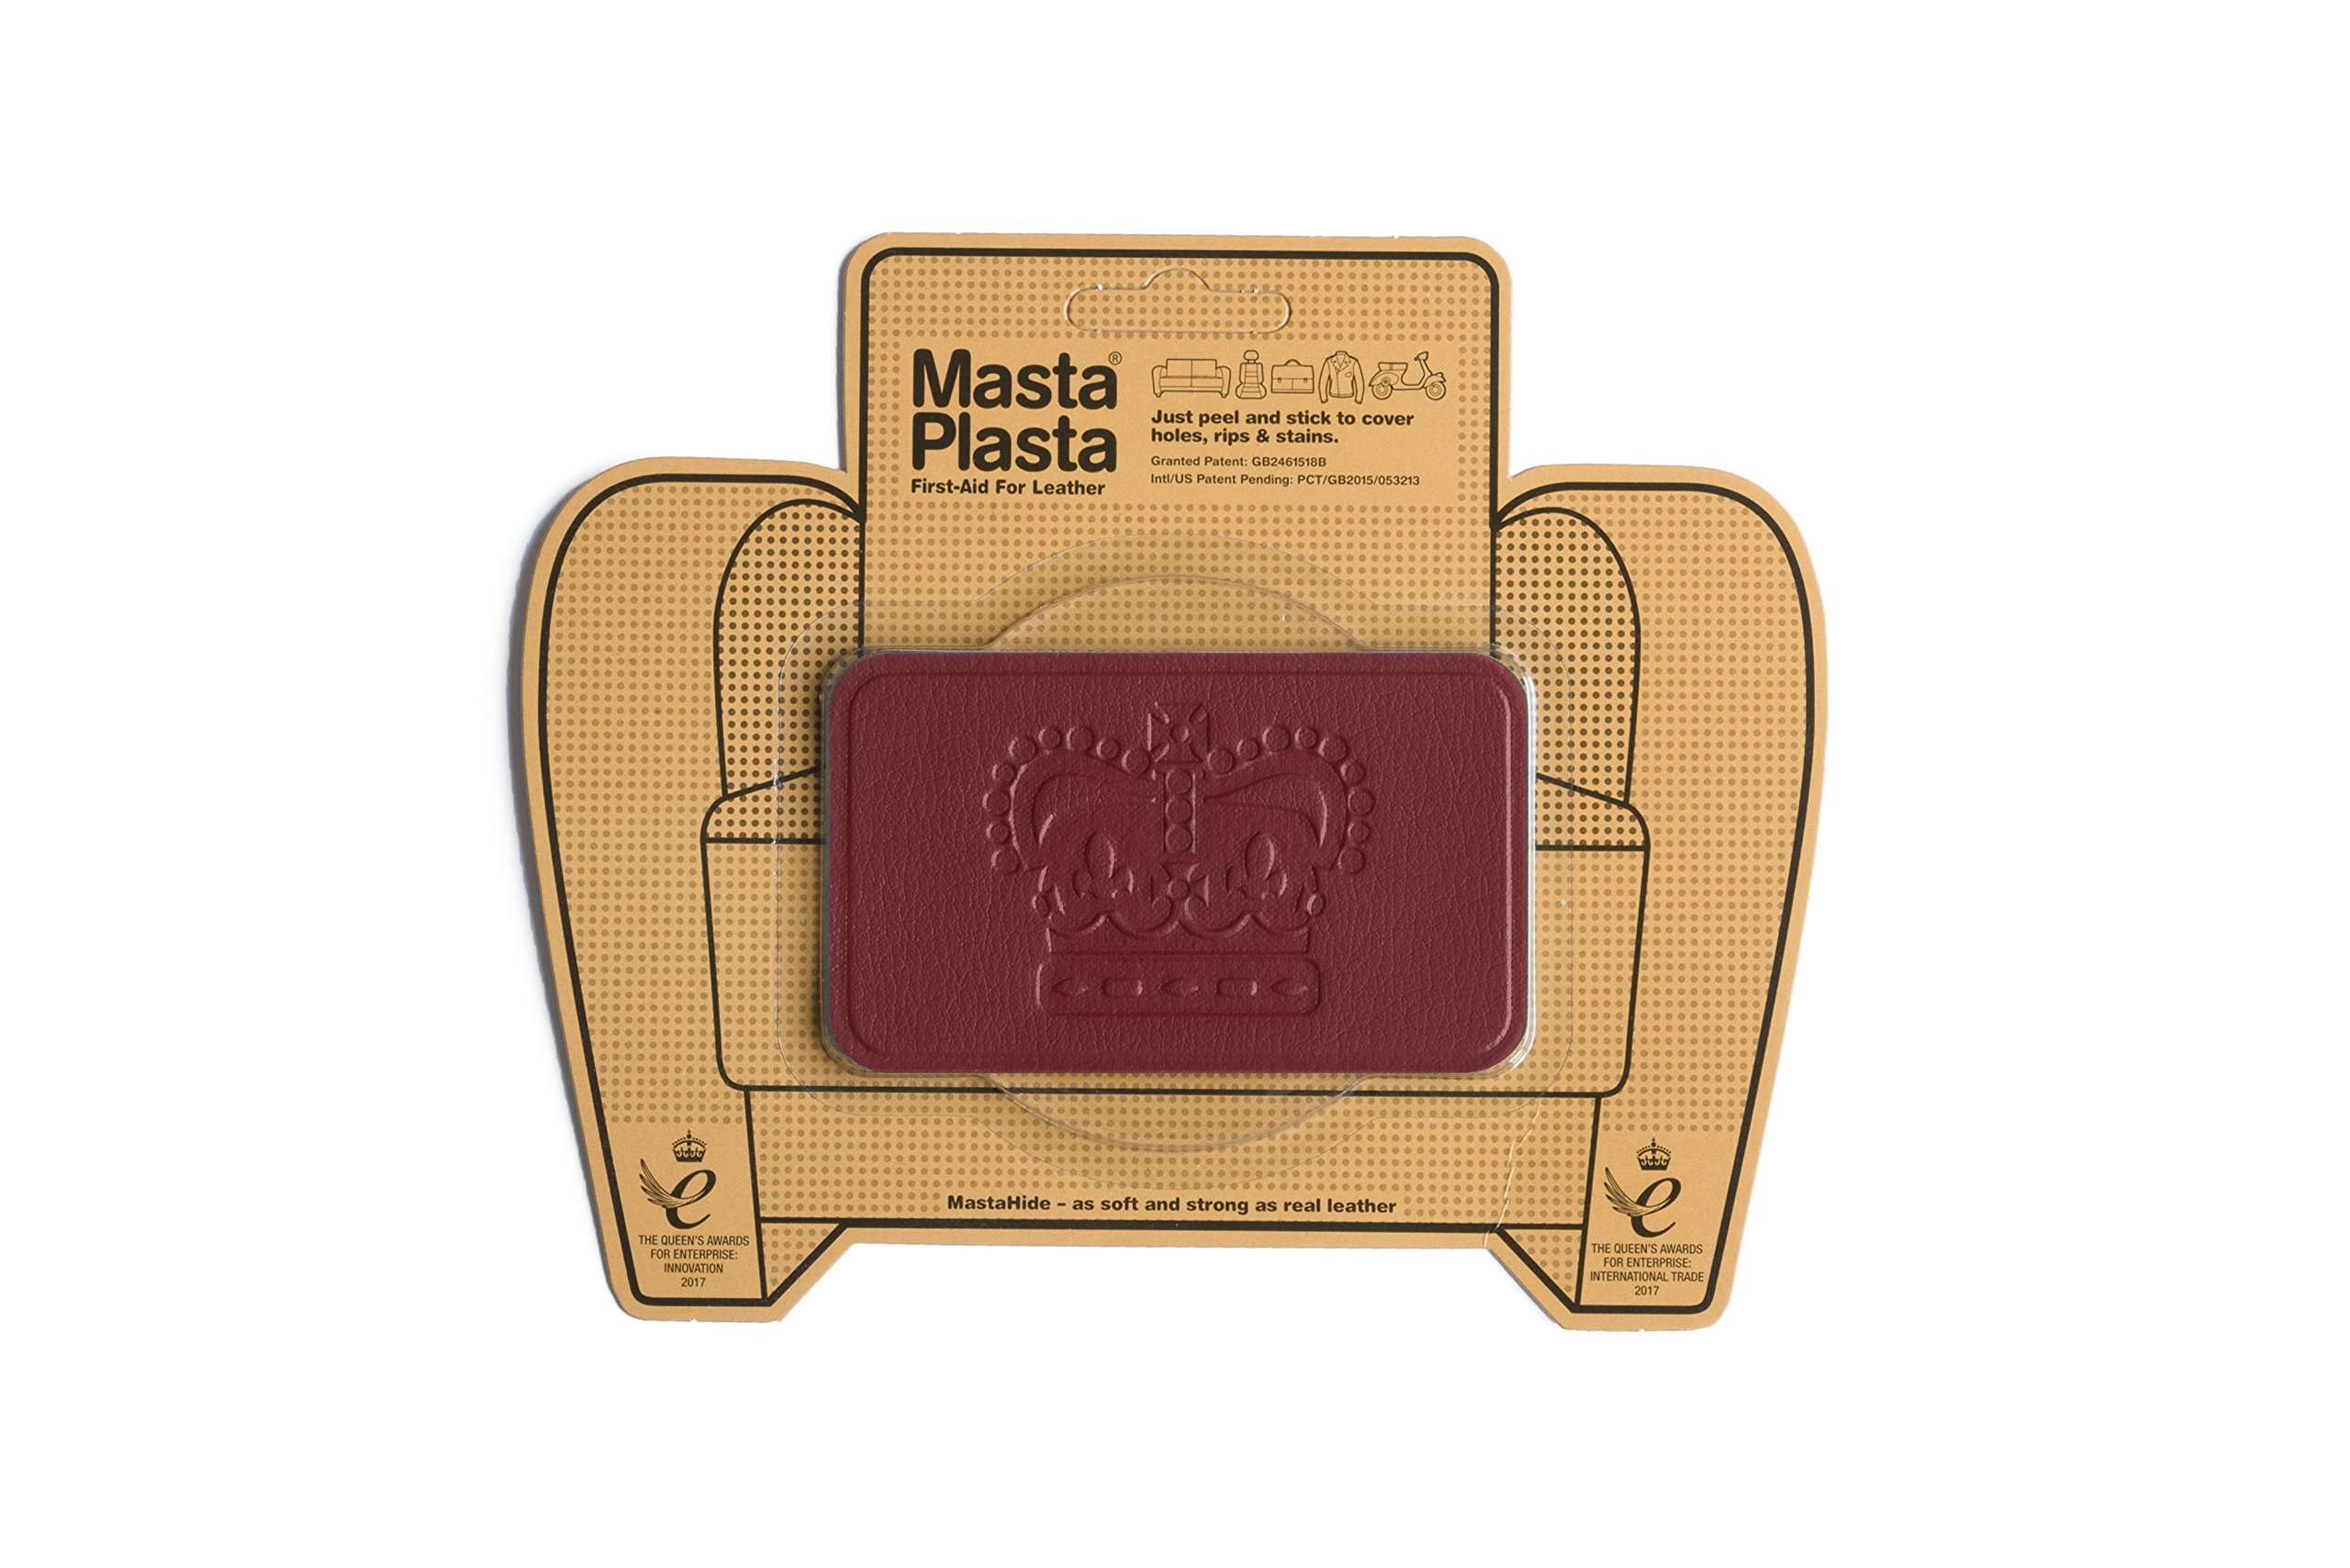 MastaPlasta, Leather Repair Patch, First-aid for Sofas, Car Seats, Handbags, Jackets, etc. Red Color, Crown 4-inch by 2.4-inch, Designs Vary